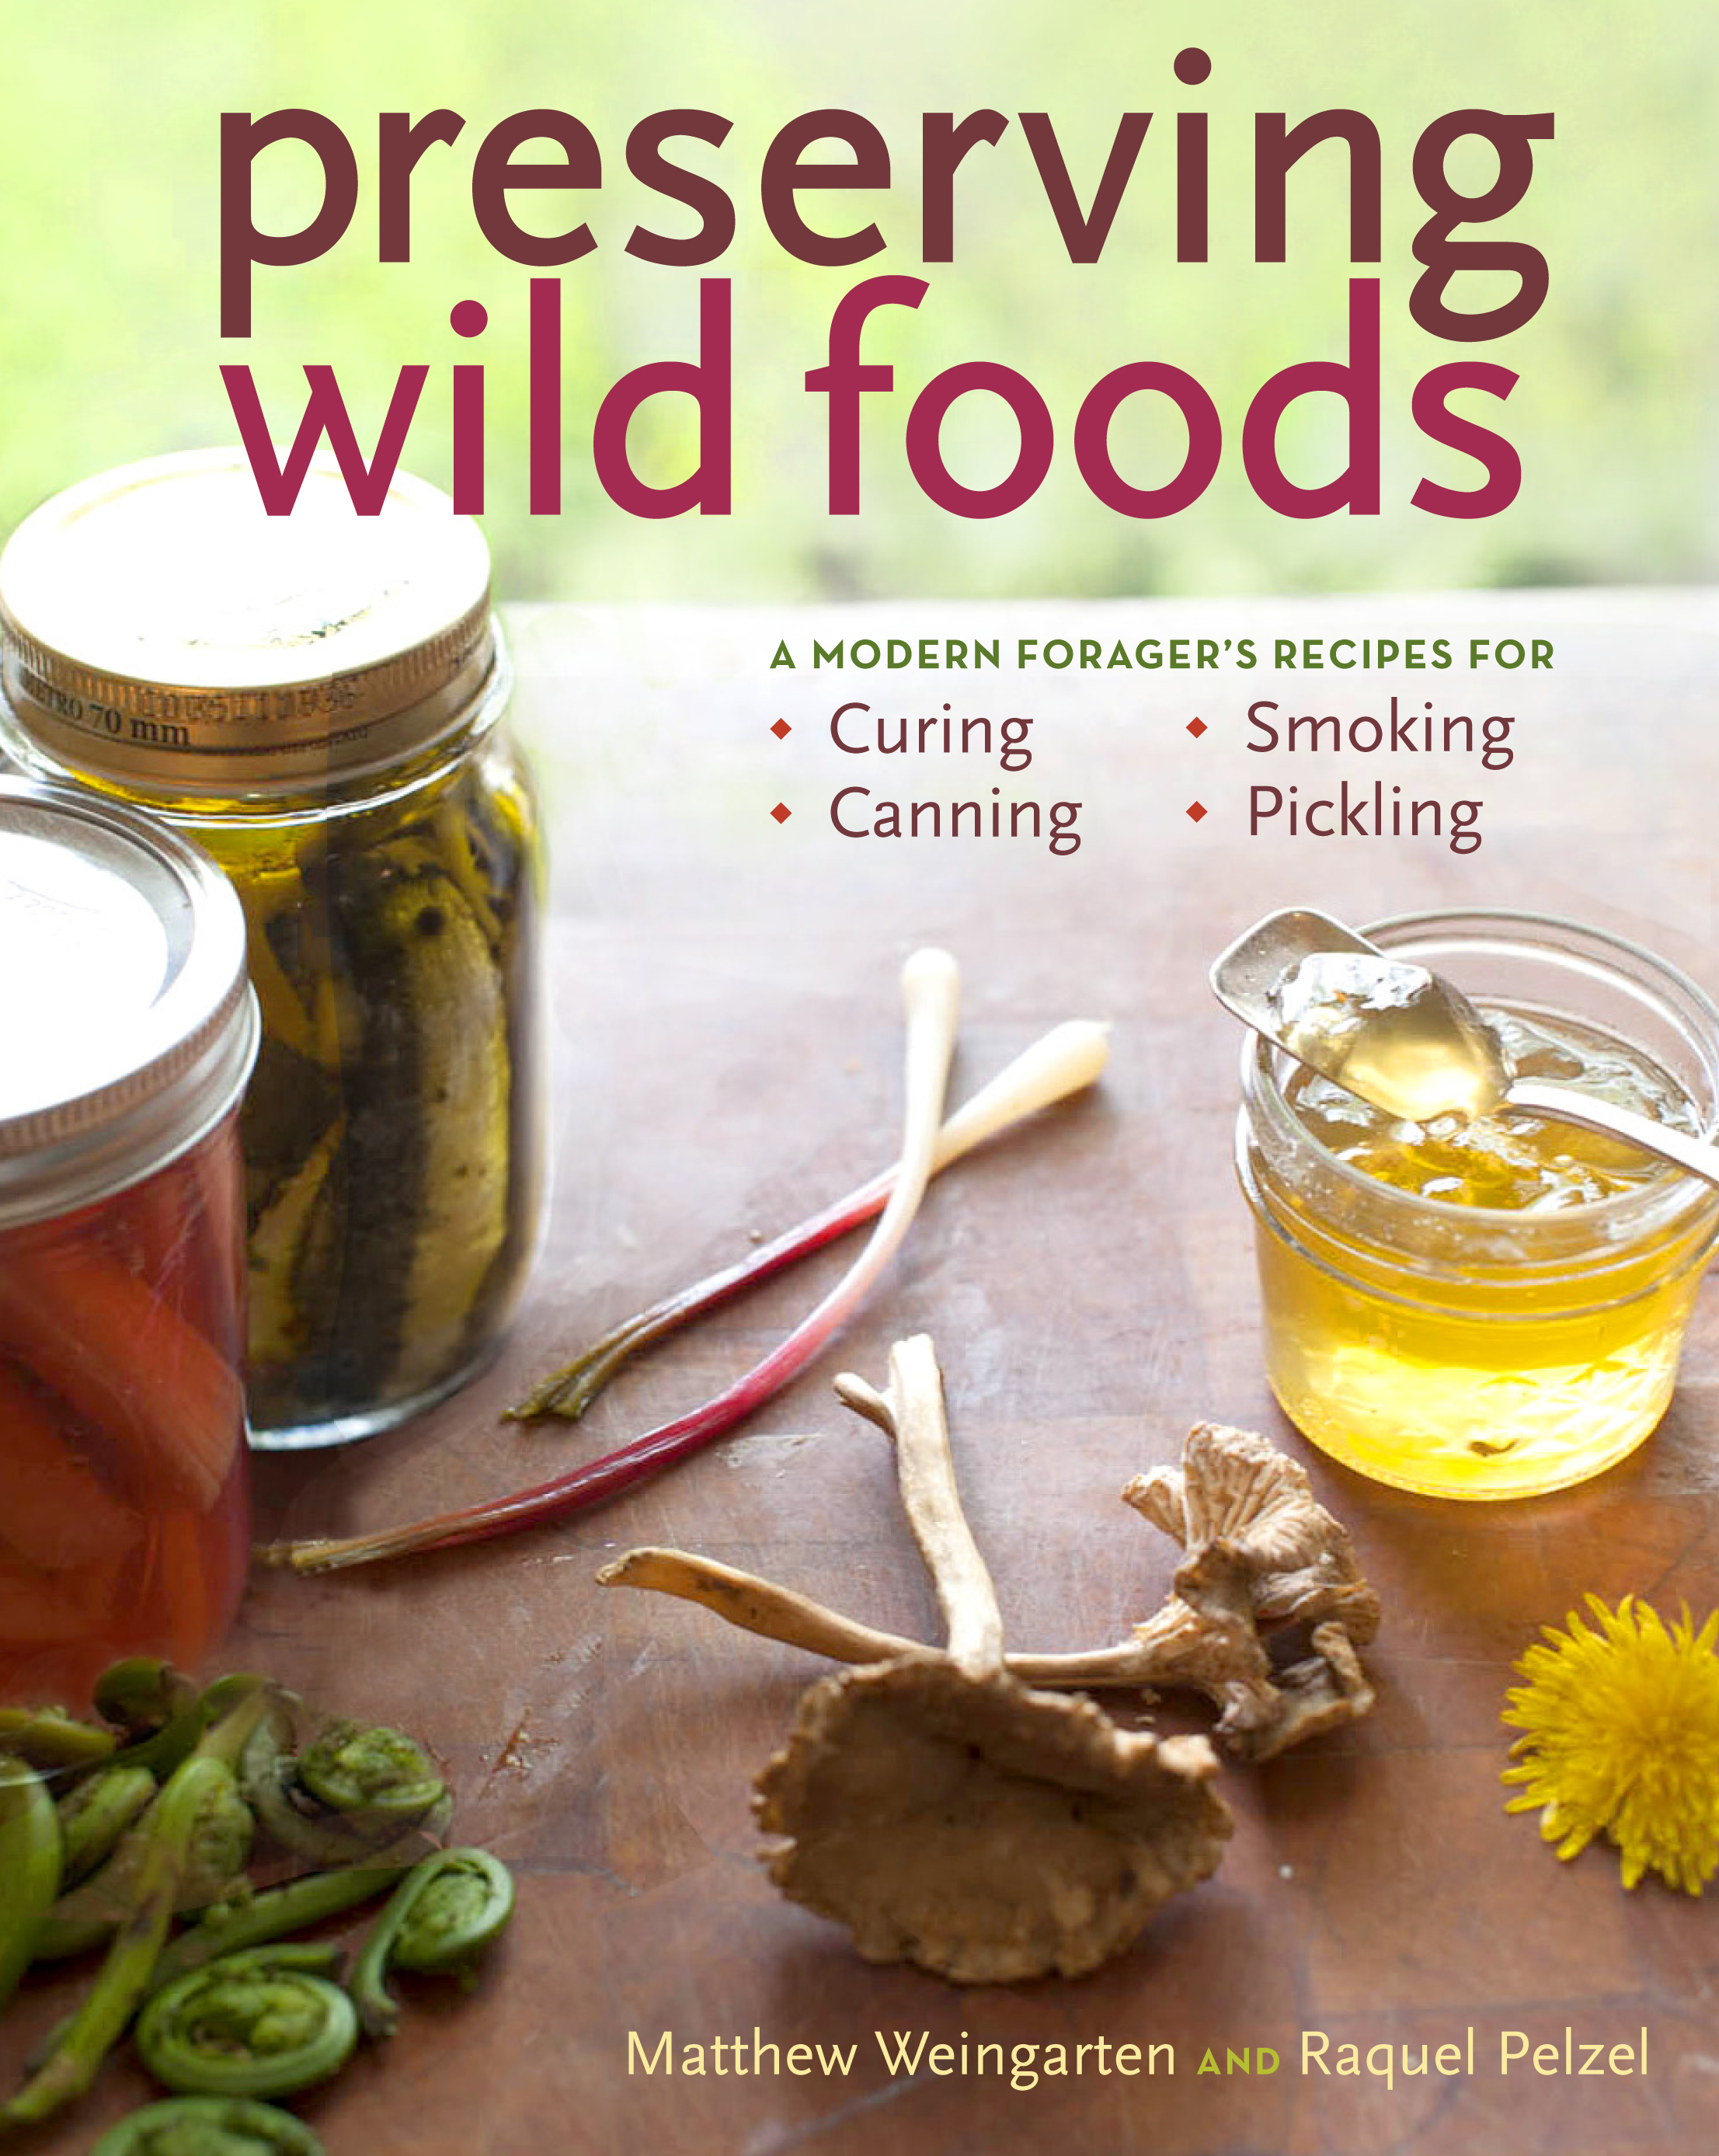 Preserving Wild Foods A Modern Forager's Recipes for Curing, Canning, Smoking, and Pickling - Raquel Pelzel